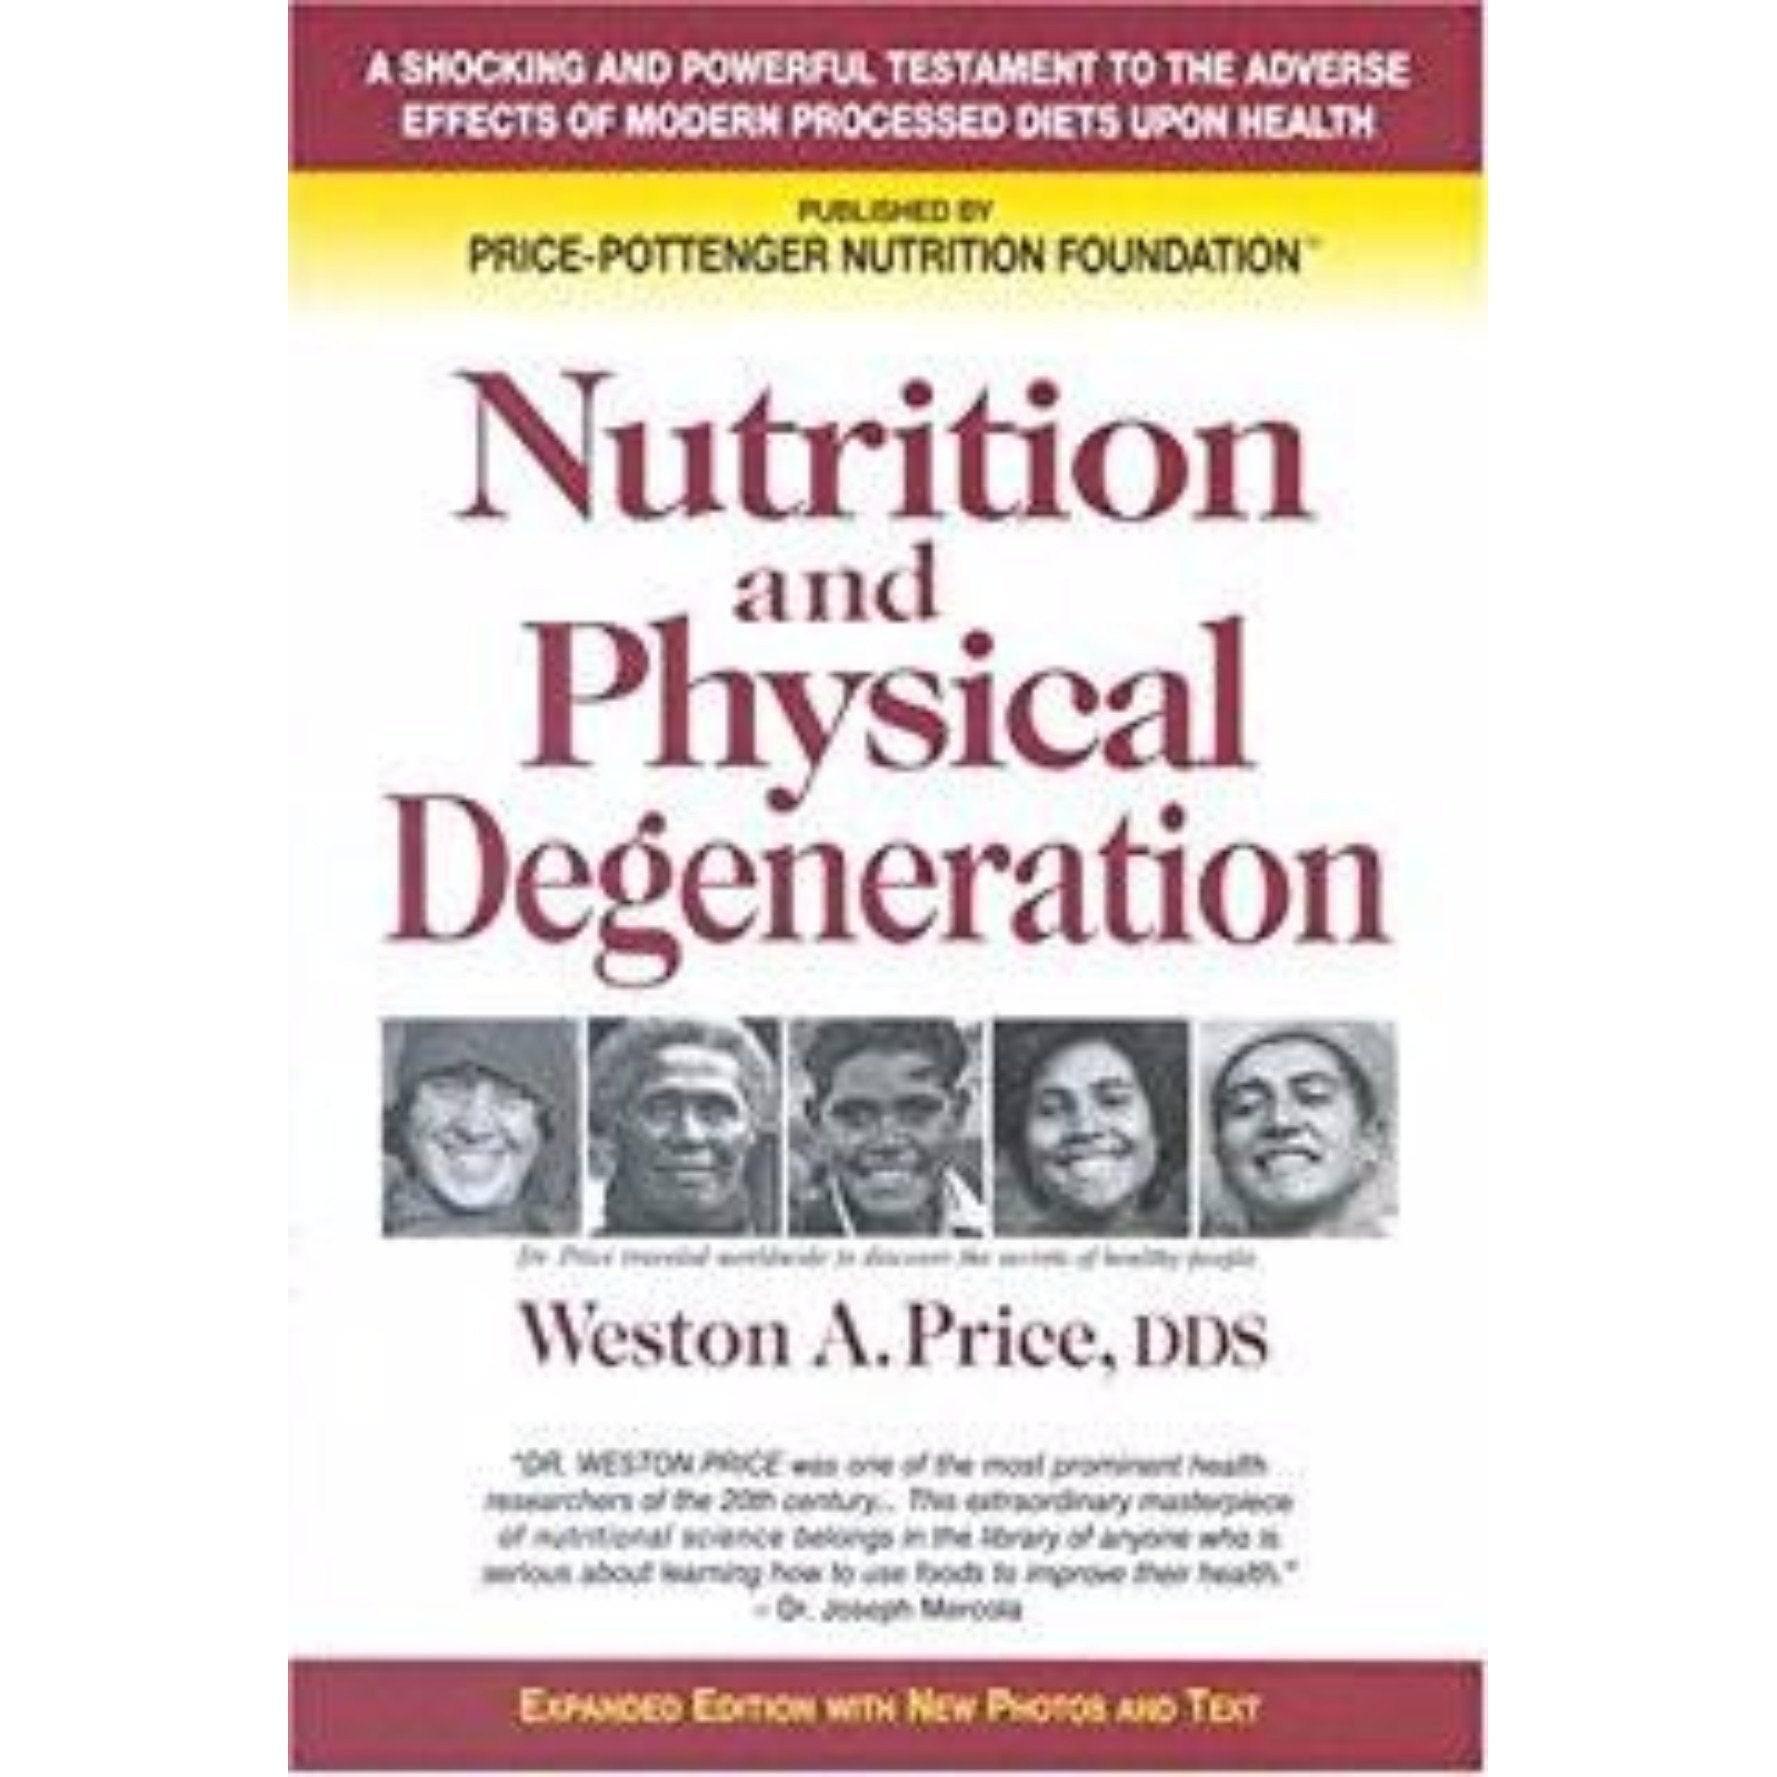 Nutrition and Physical Degeneration Dr Weston A Price - Nourishing Ecology